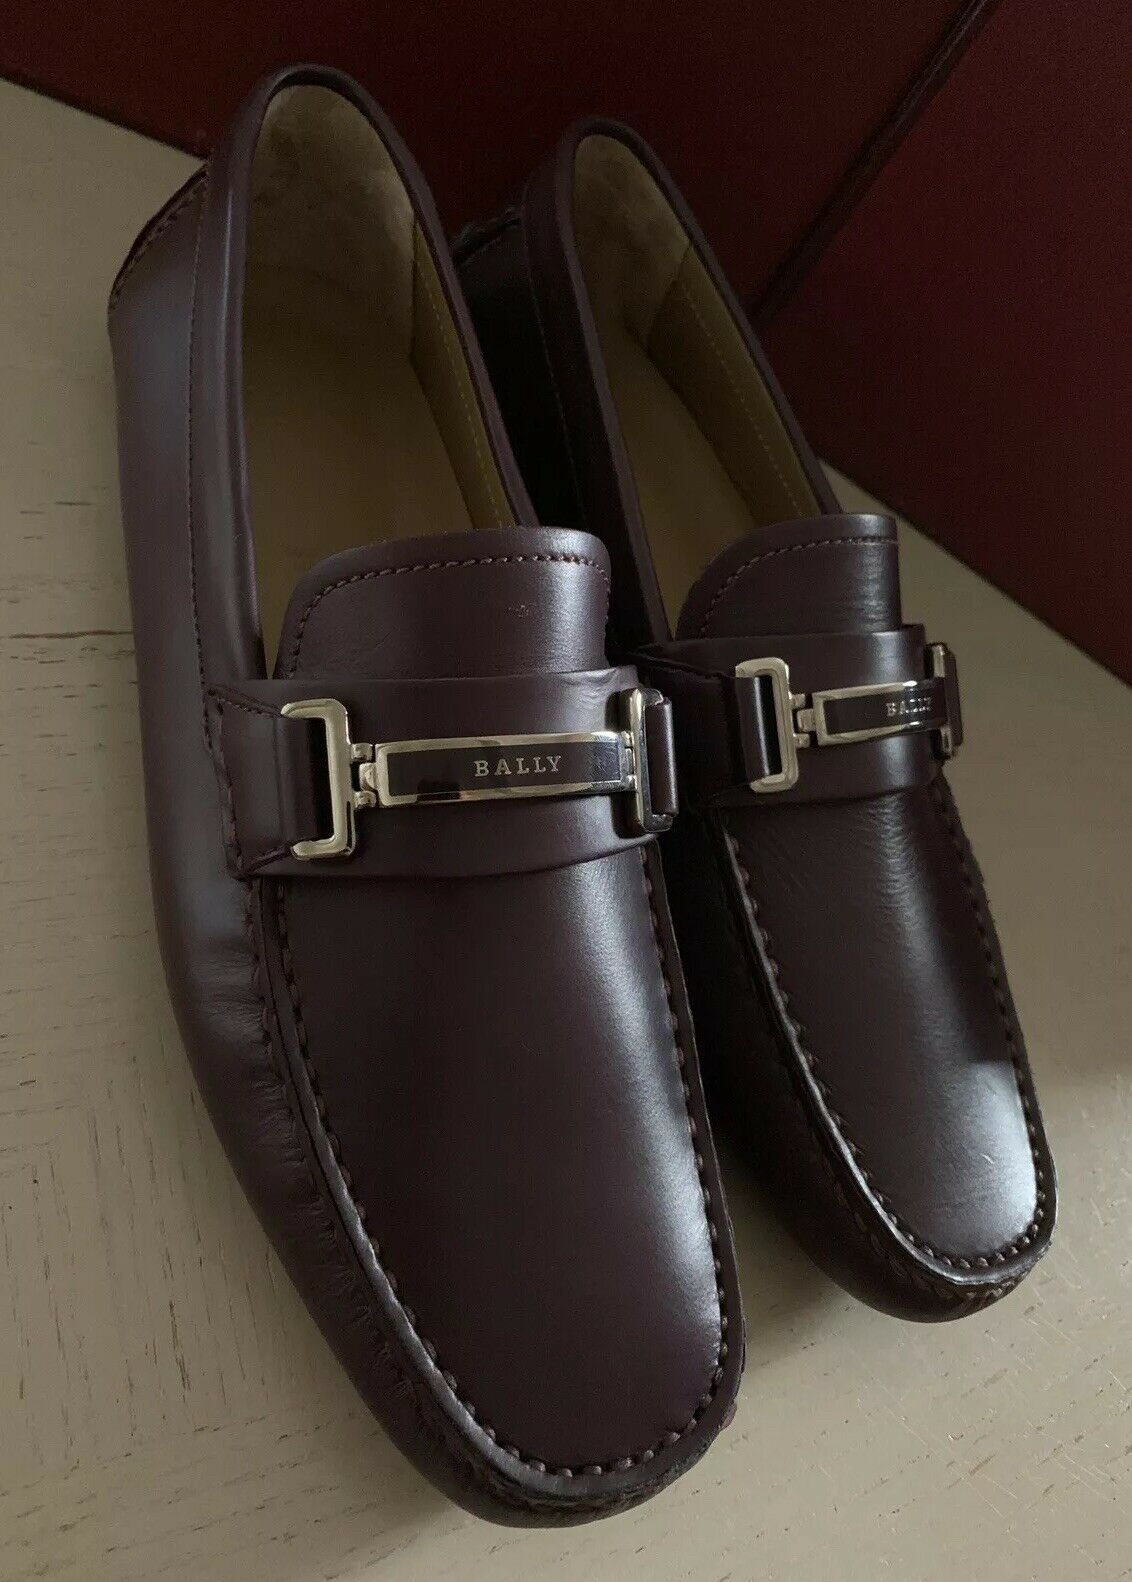 New $590 Bally Men Drulio Leather Driver Loafers Shoes DK Burgundy 8 US Italy